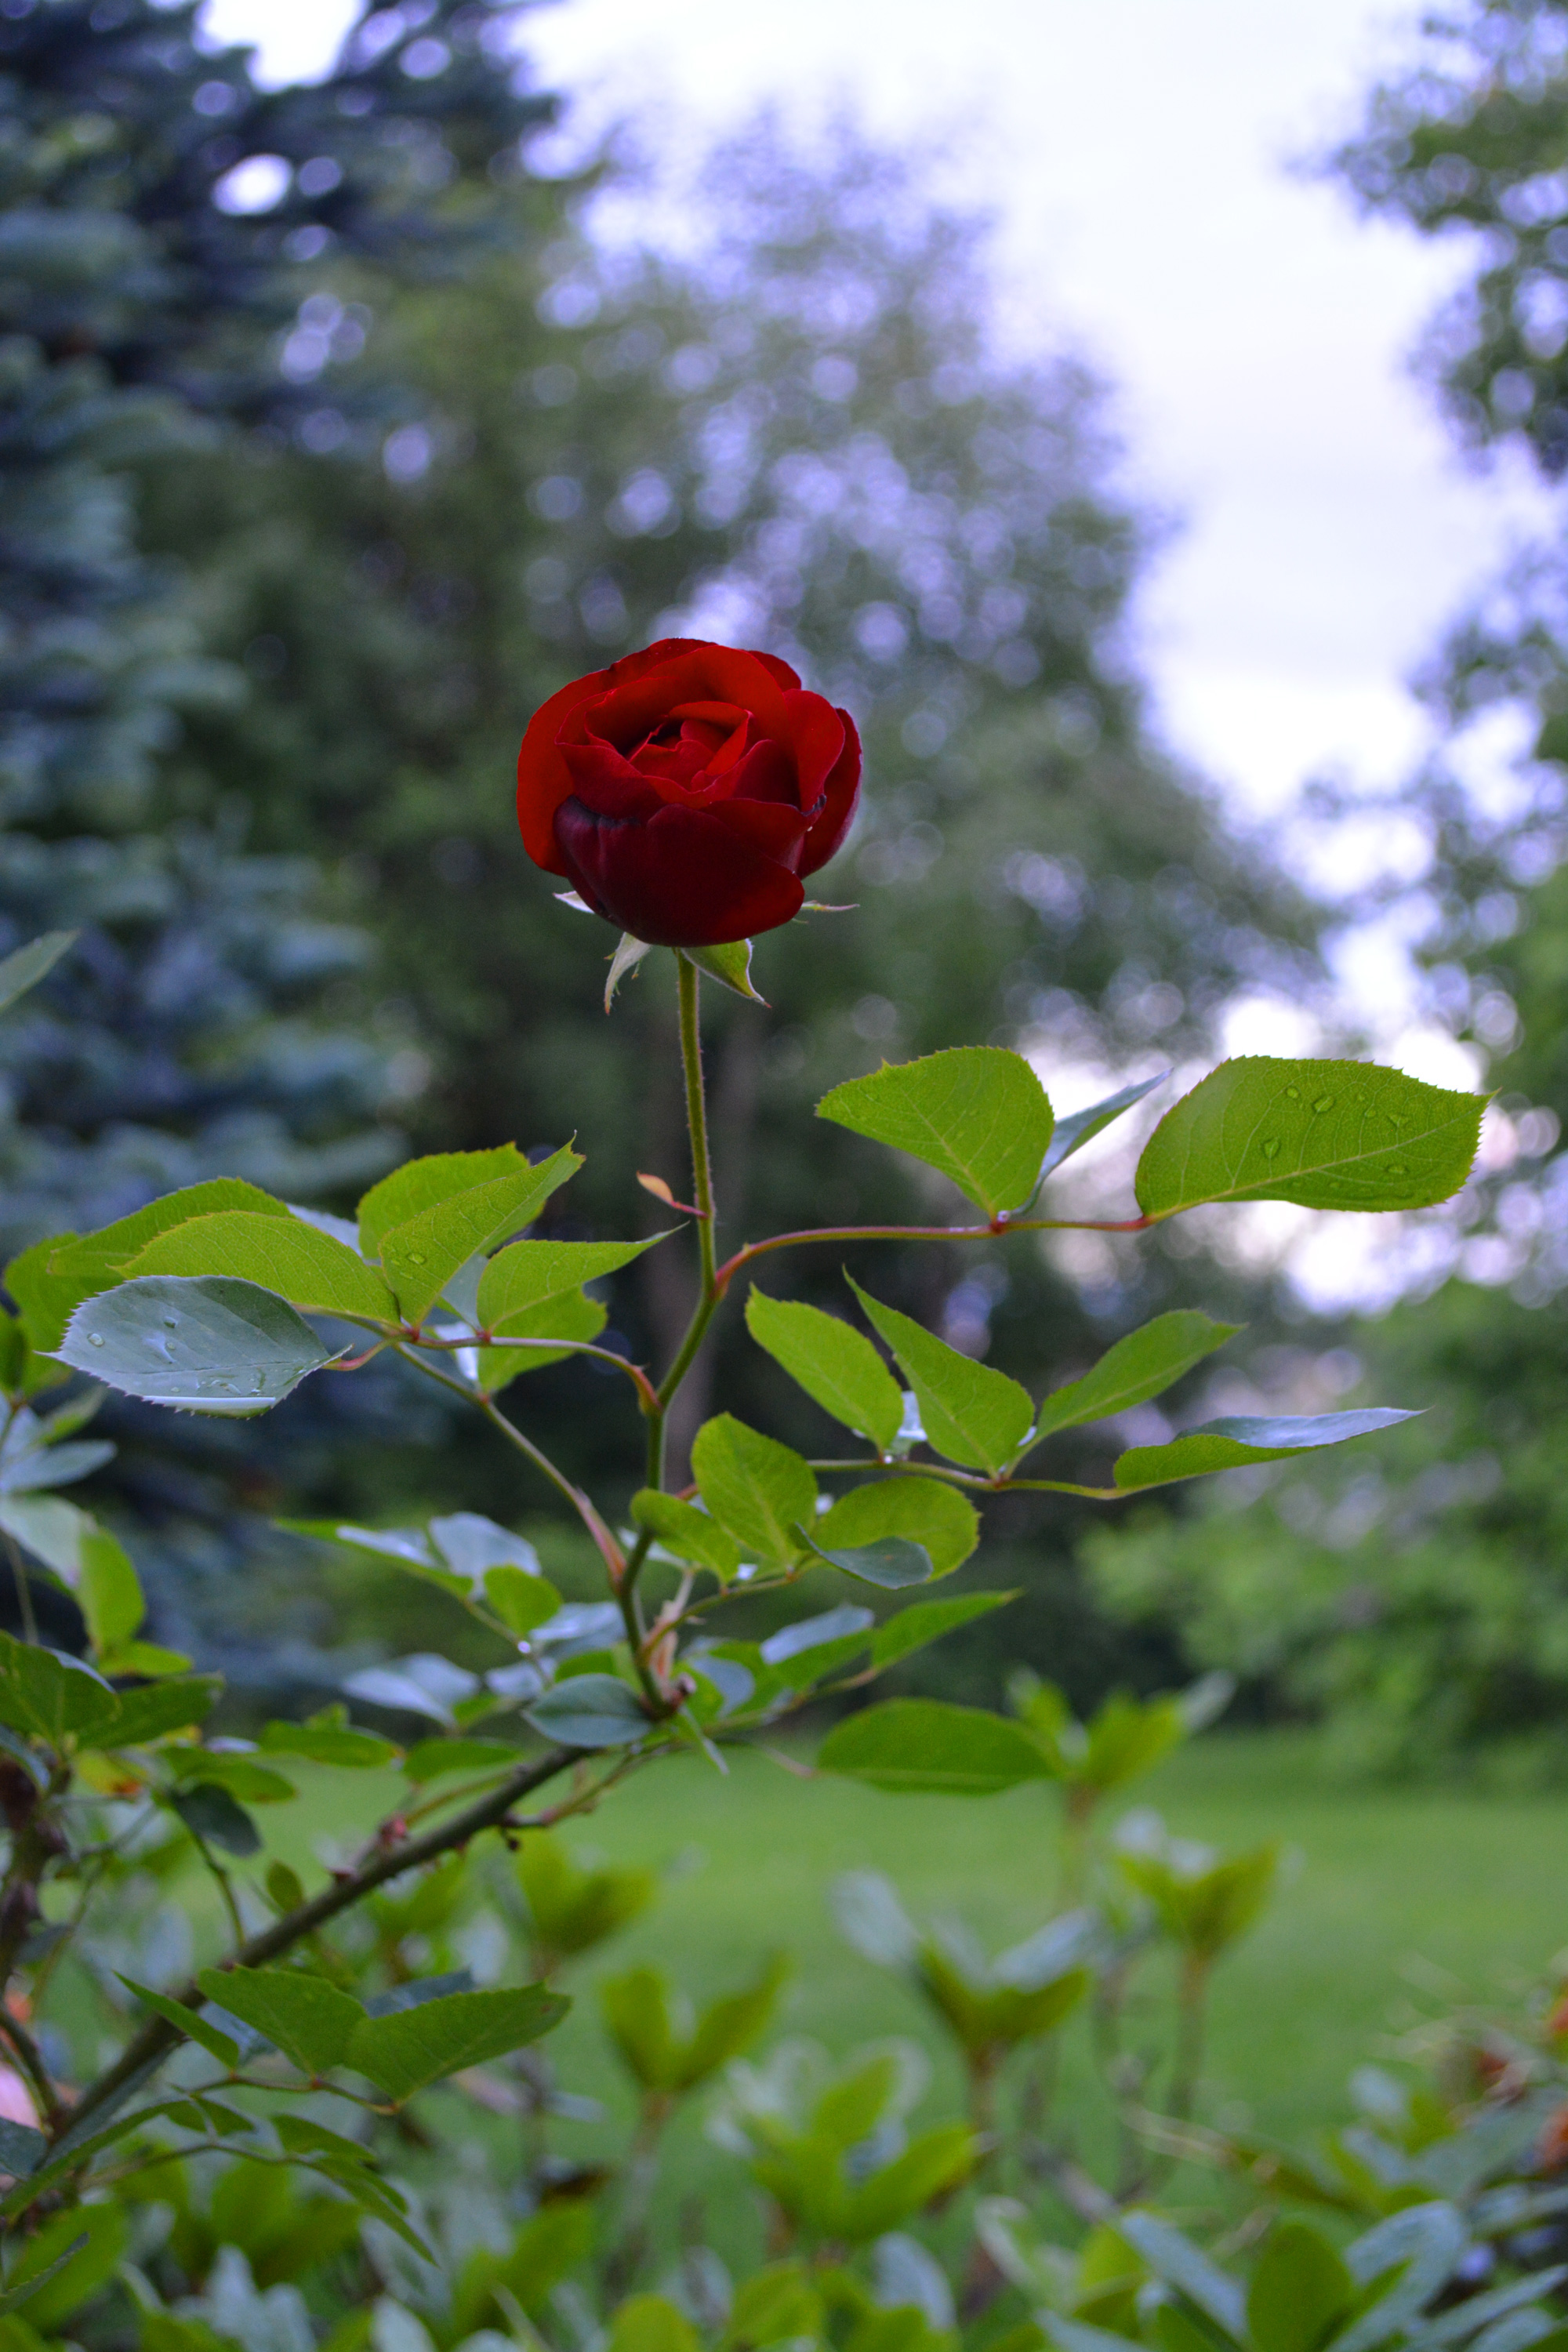 Single red rose, Anniversary, Rain, Nature, One, HQ Photo